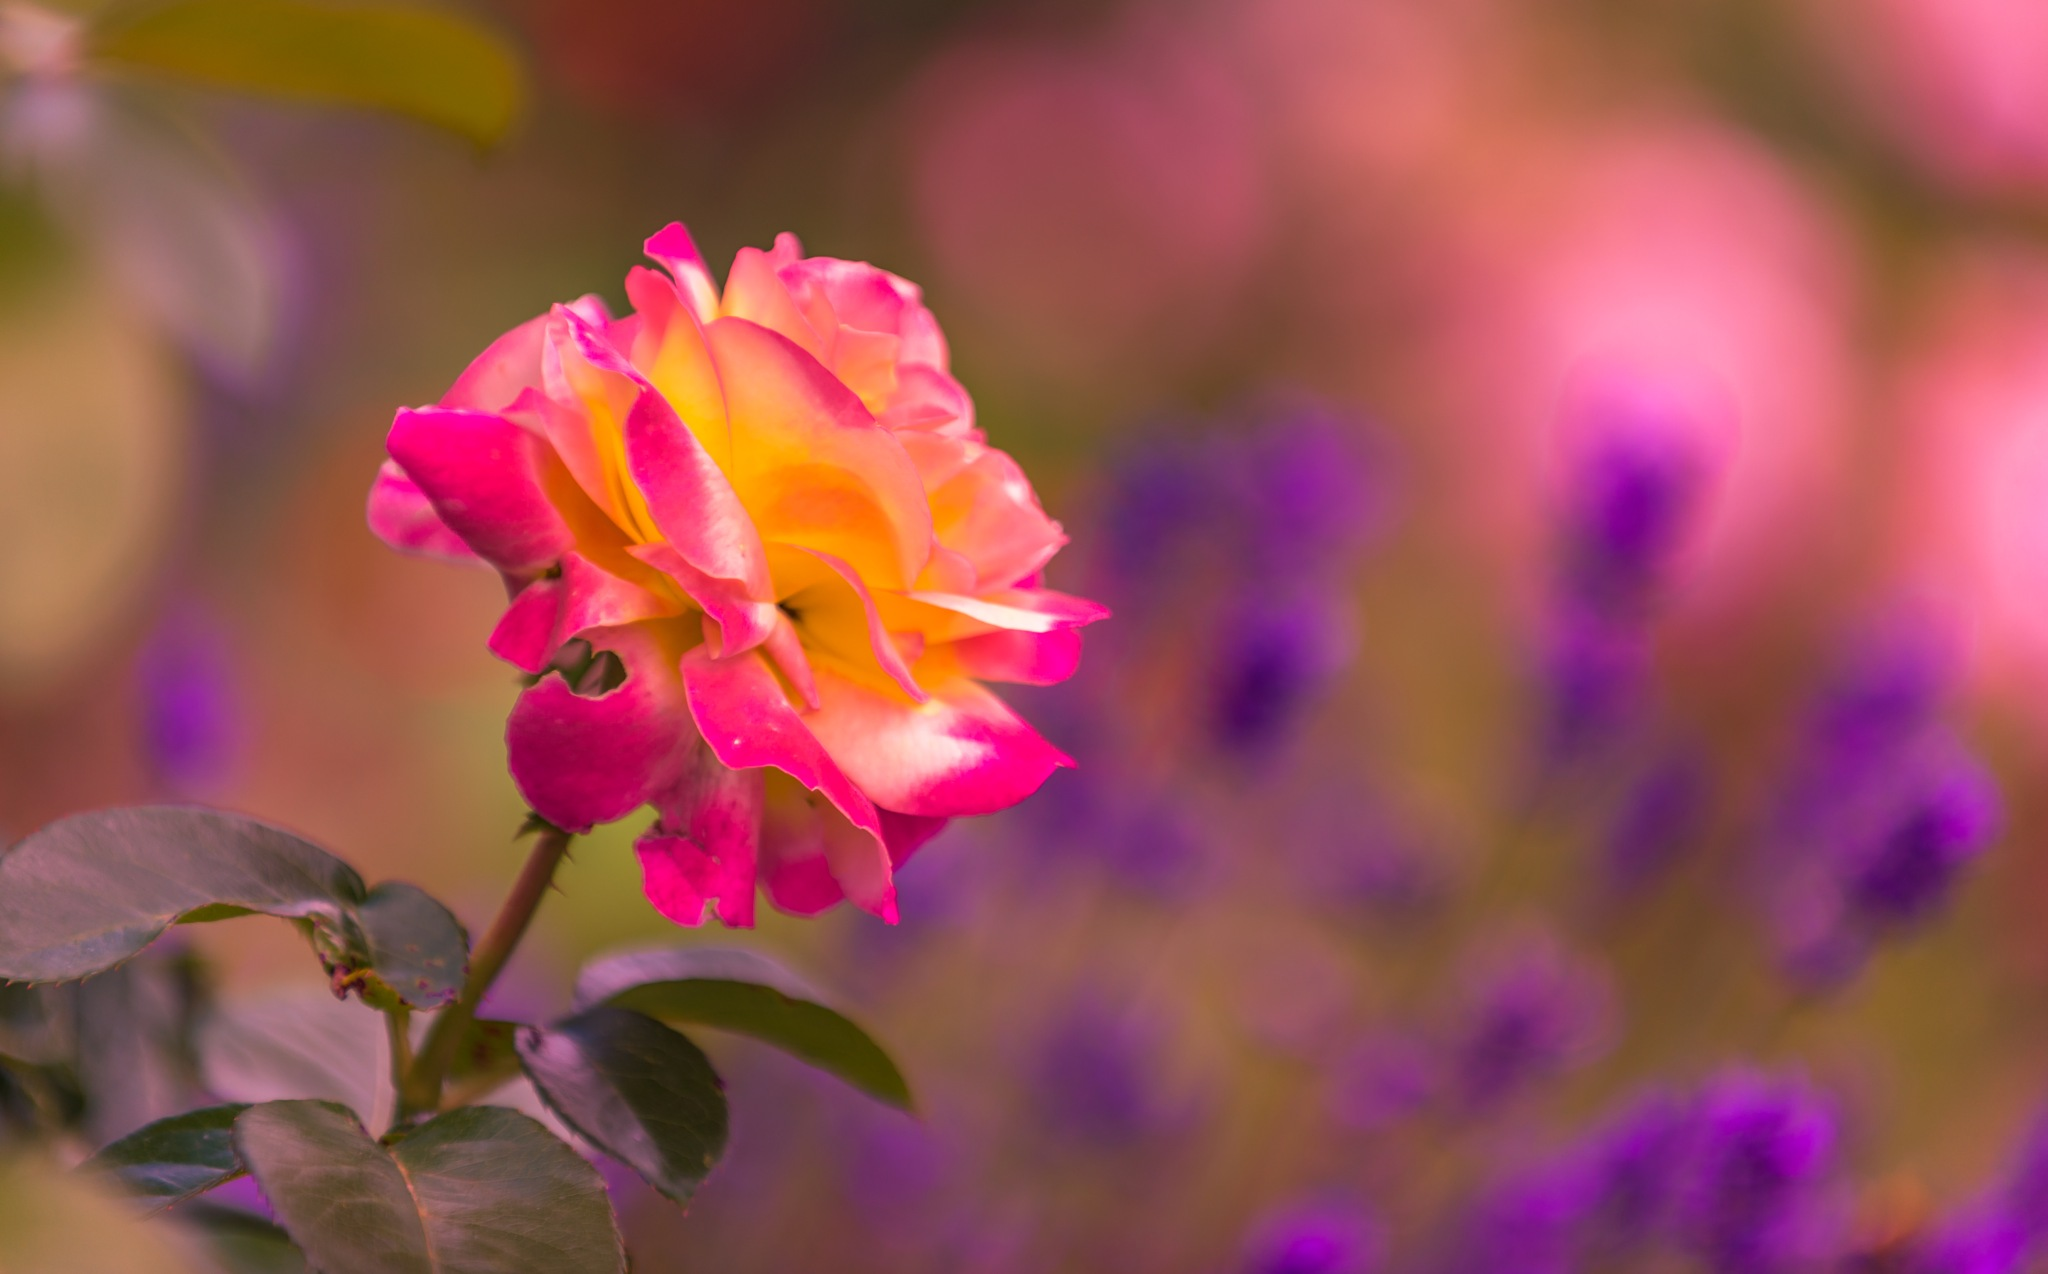 Colors by Sivakumar